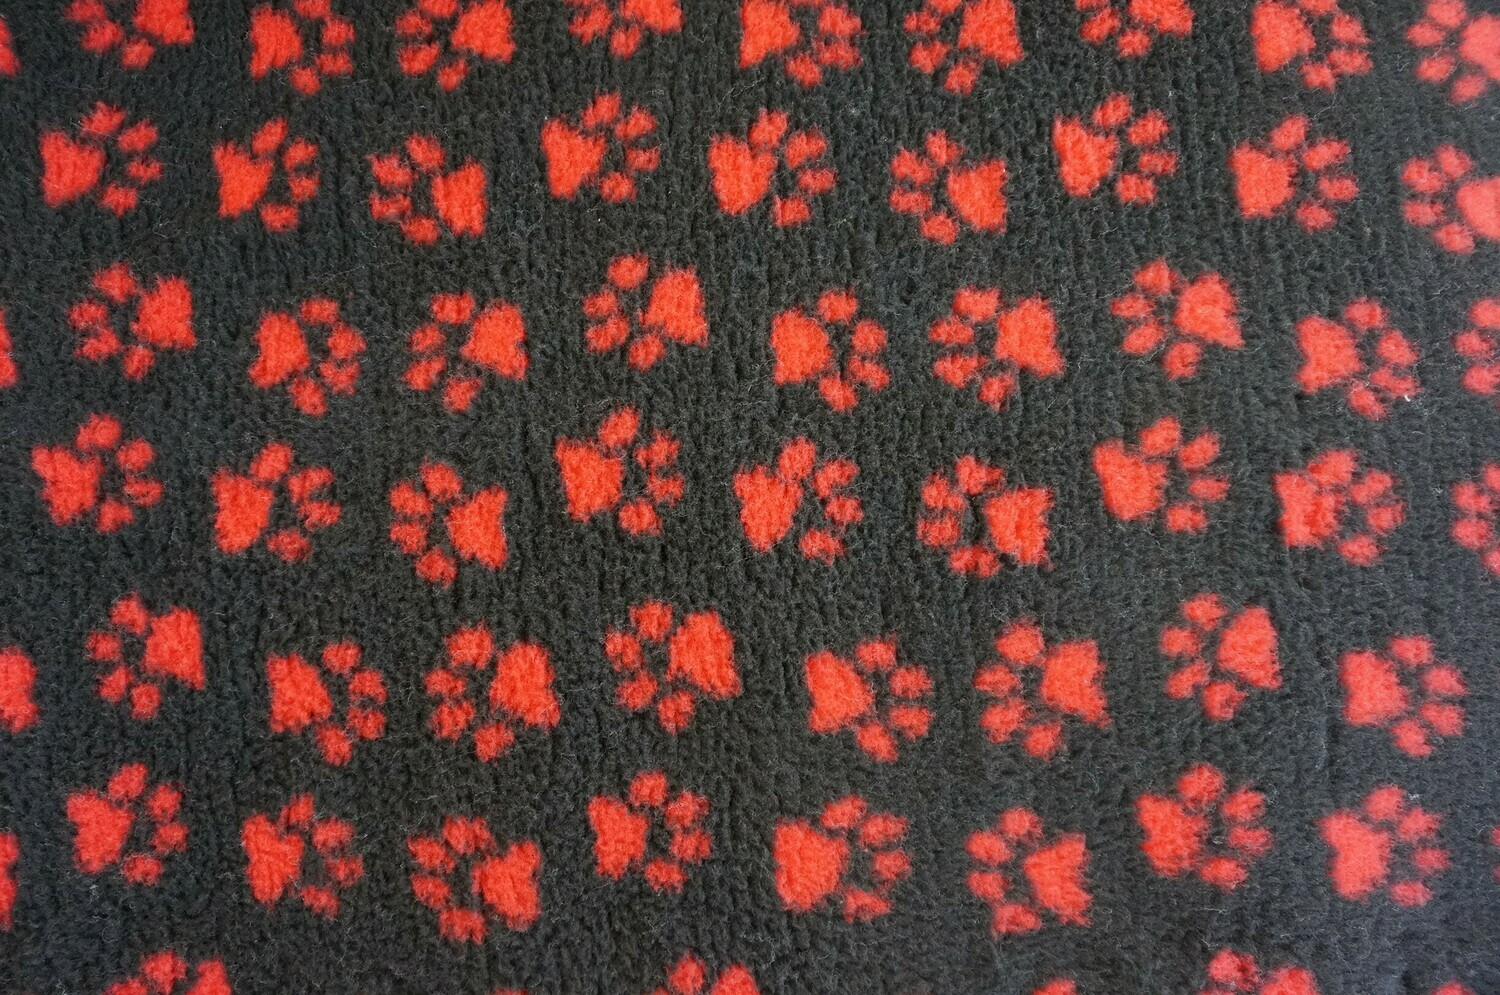 {15 x Metre Roll} : Ultra Premium - Non Slip Backing :  Charcoal with Red Paws - Ref : (6376)